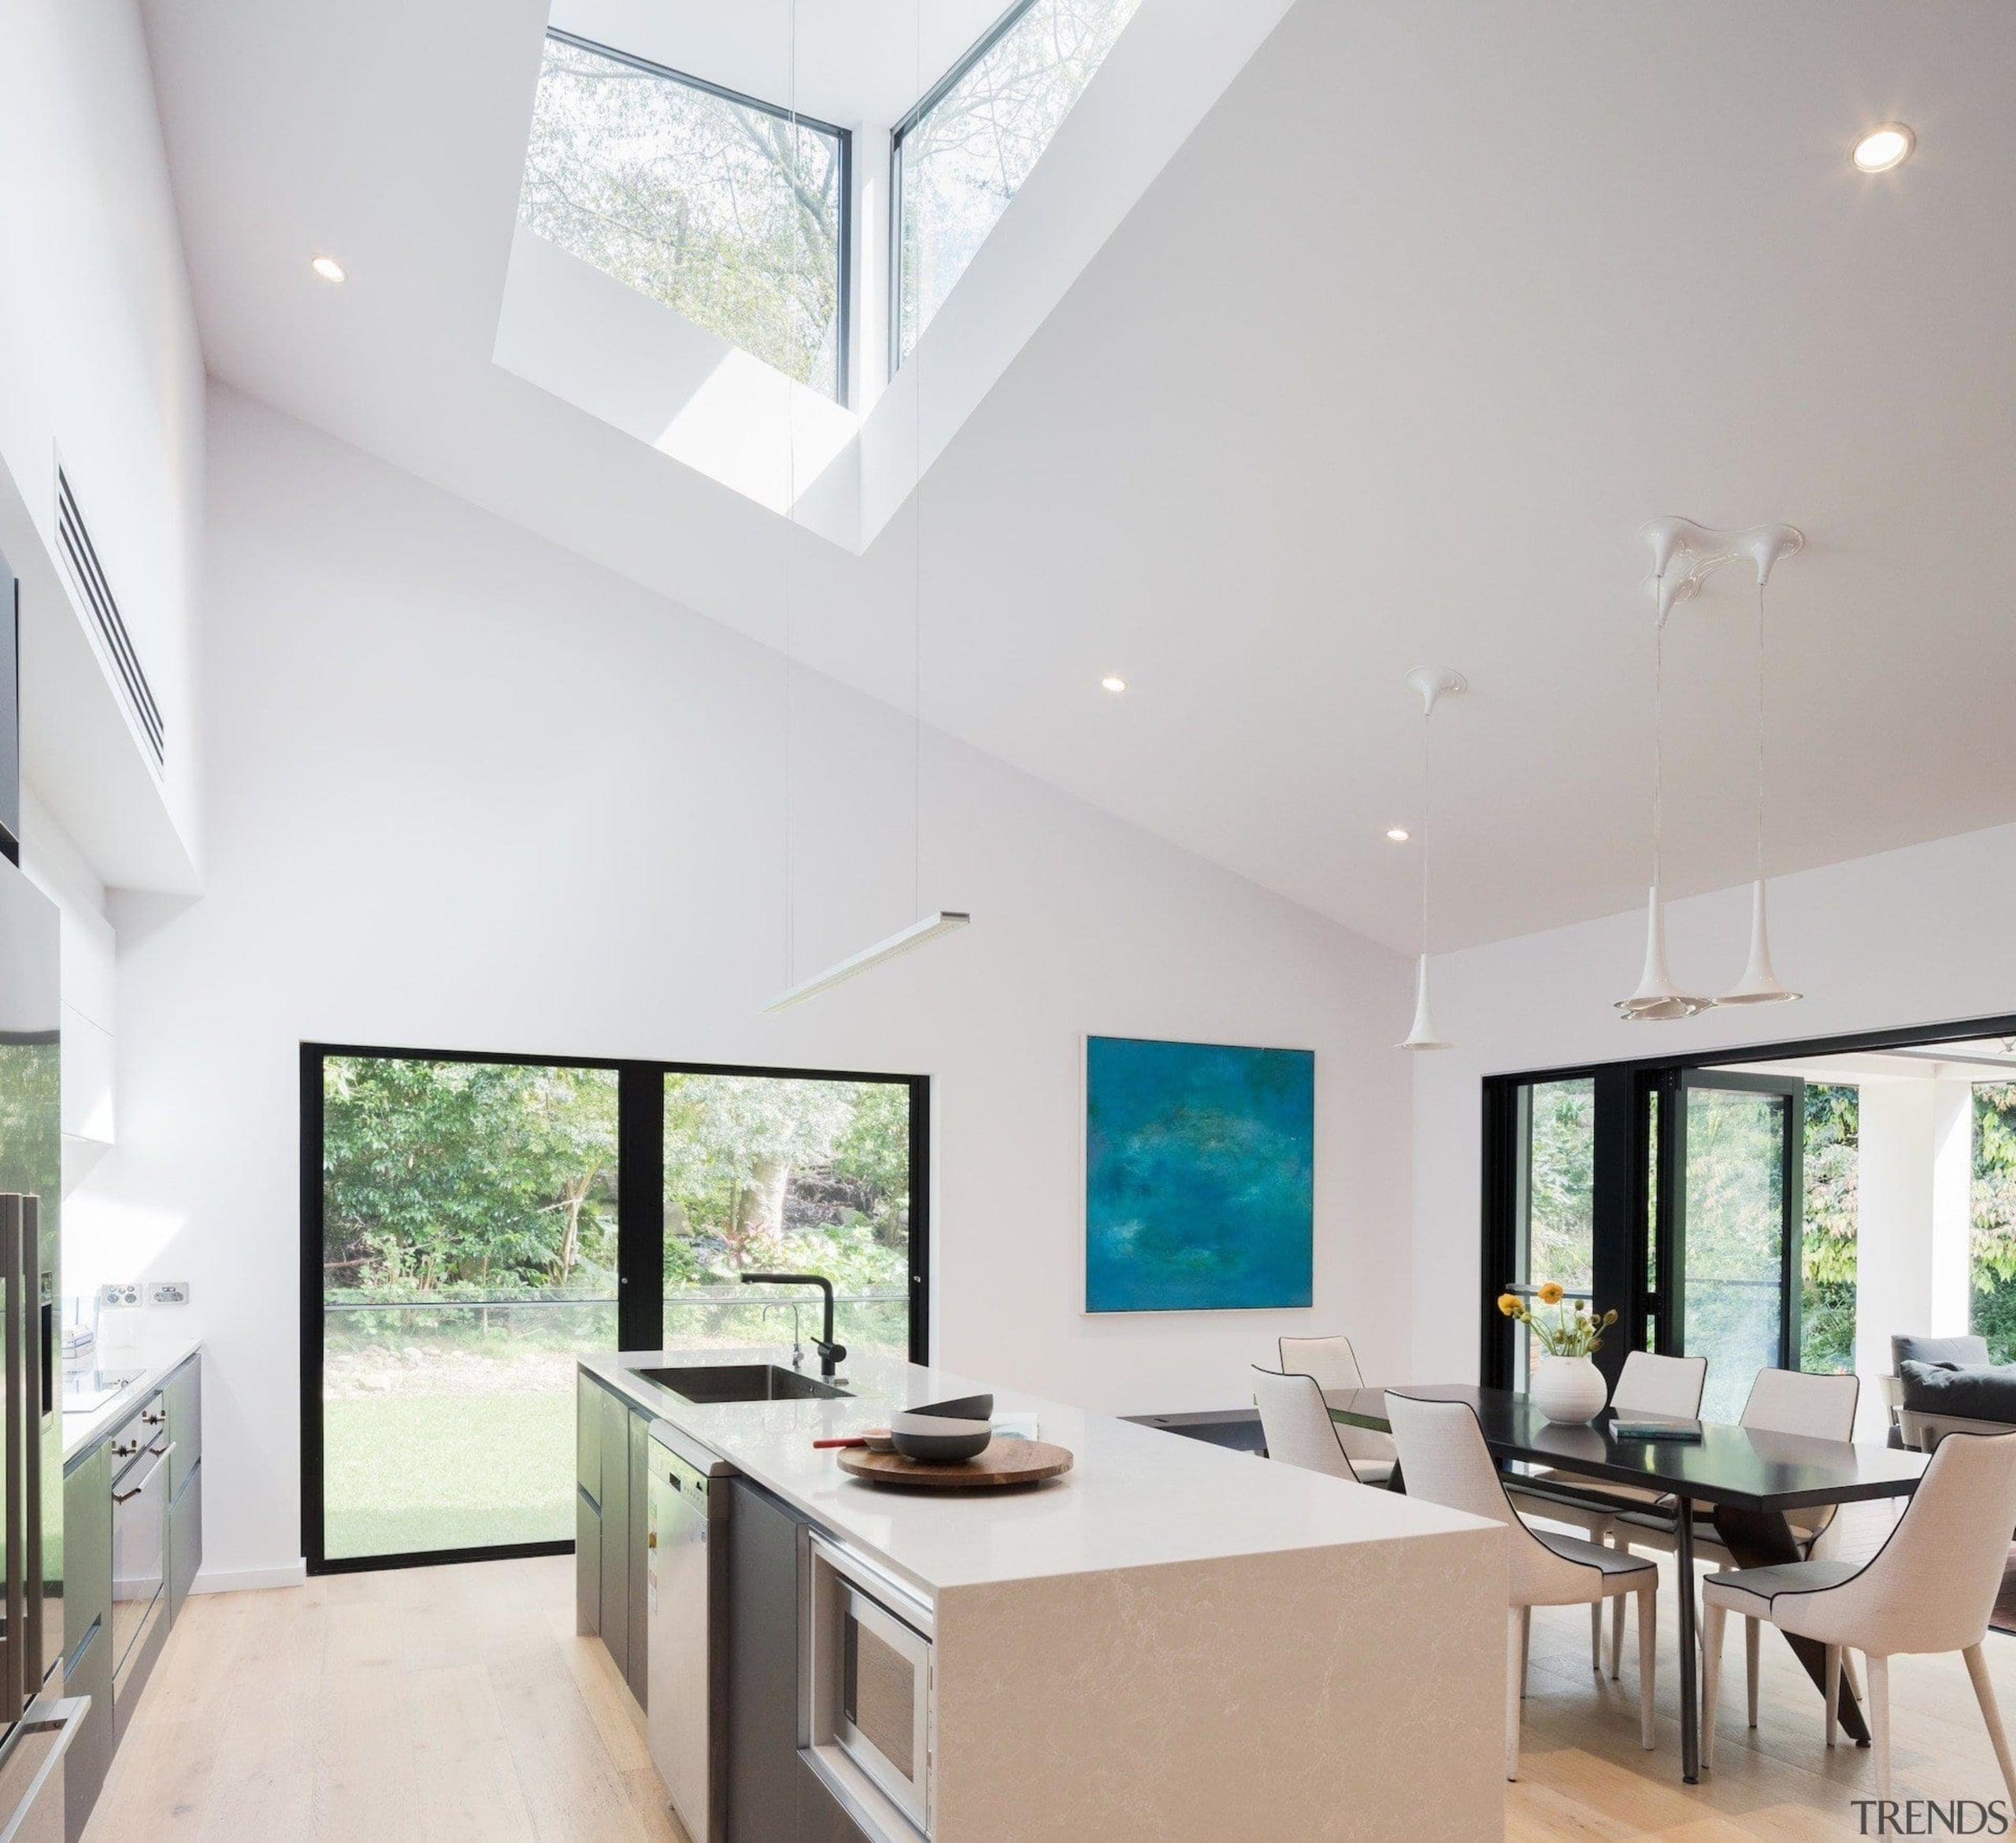 Winner – Bijl Architecture - architecture   ceiling architecture, ceiling, daylighting, estate, house, interior design, living room, property, real estate, window, gray, white